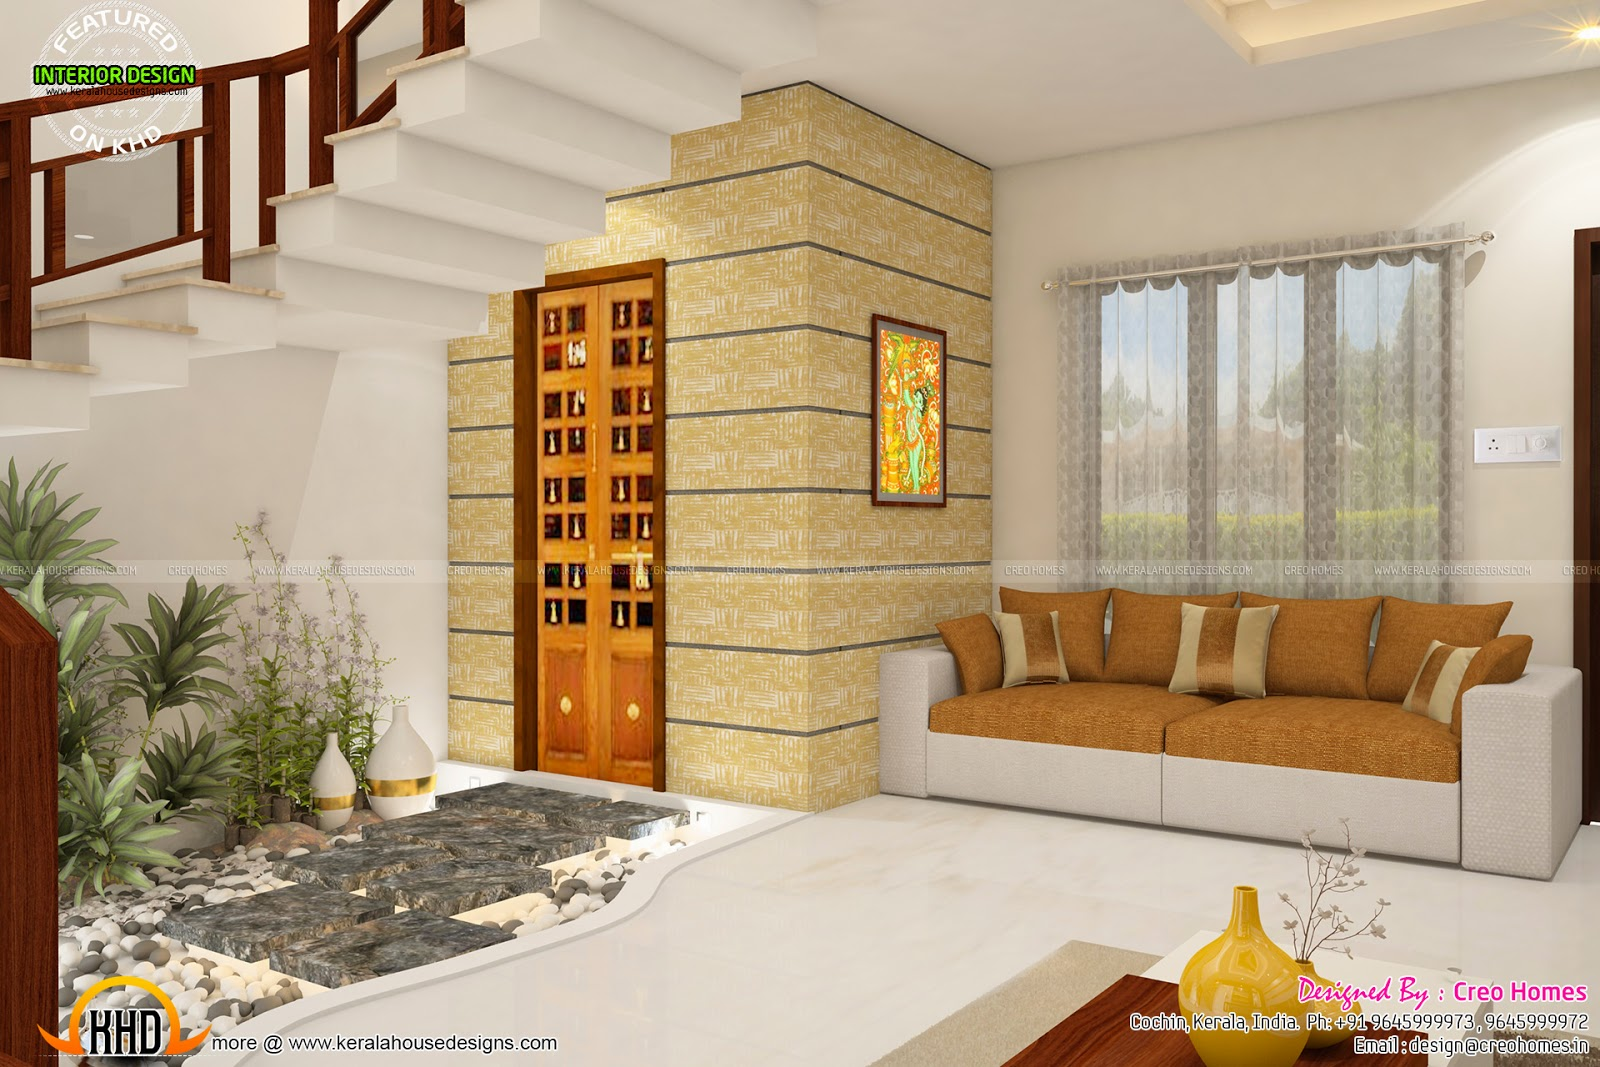 Total home interior solutions by creo homes kerala home for House designs interior photos